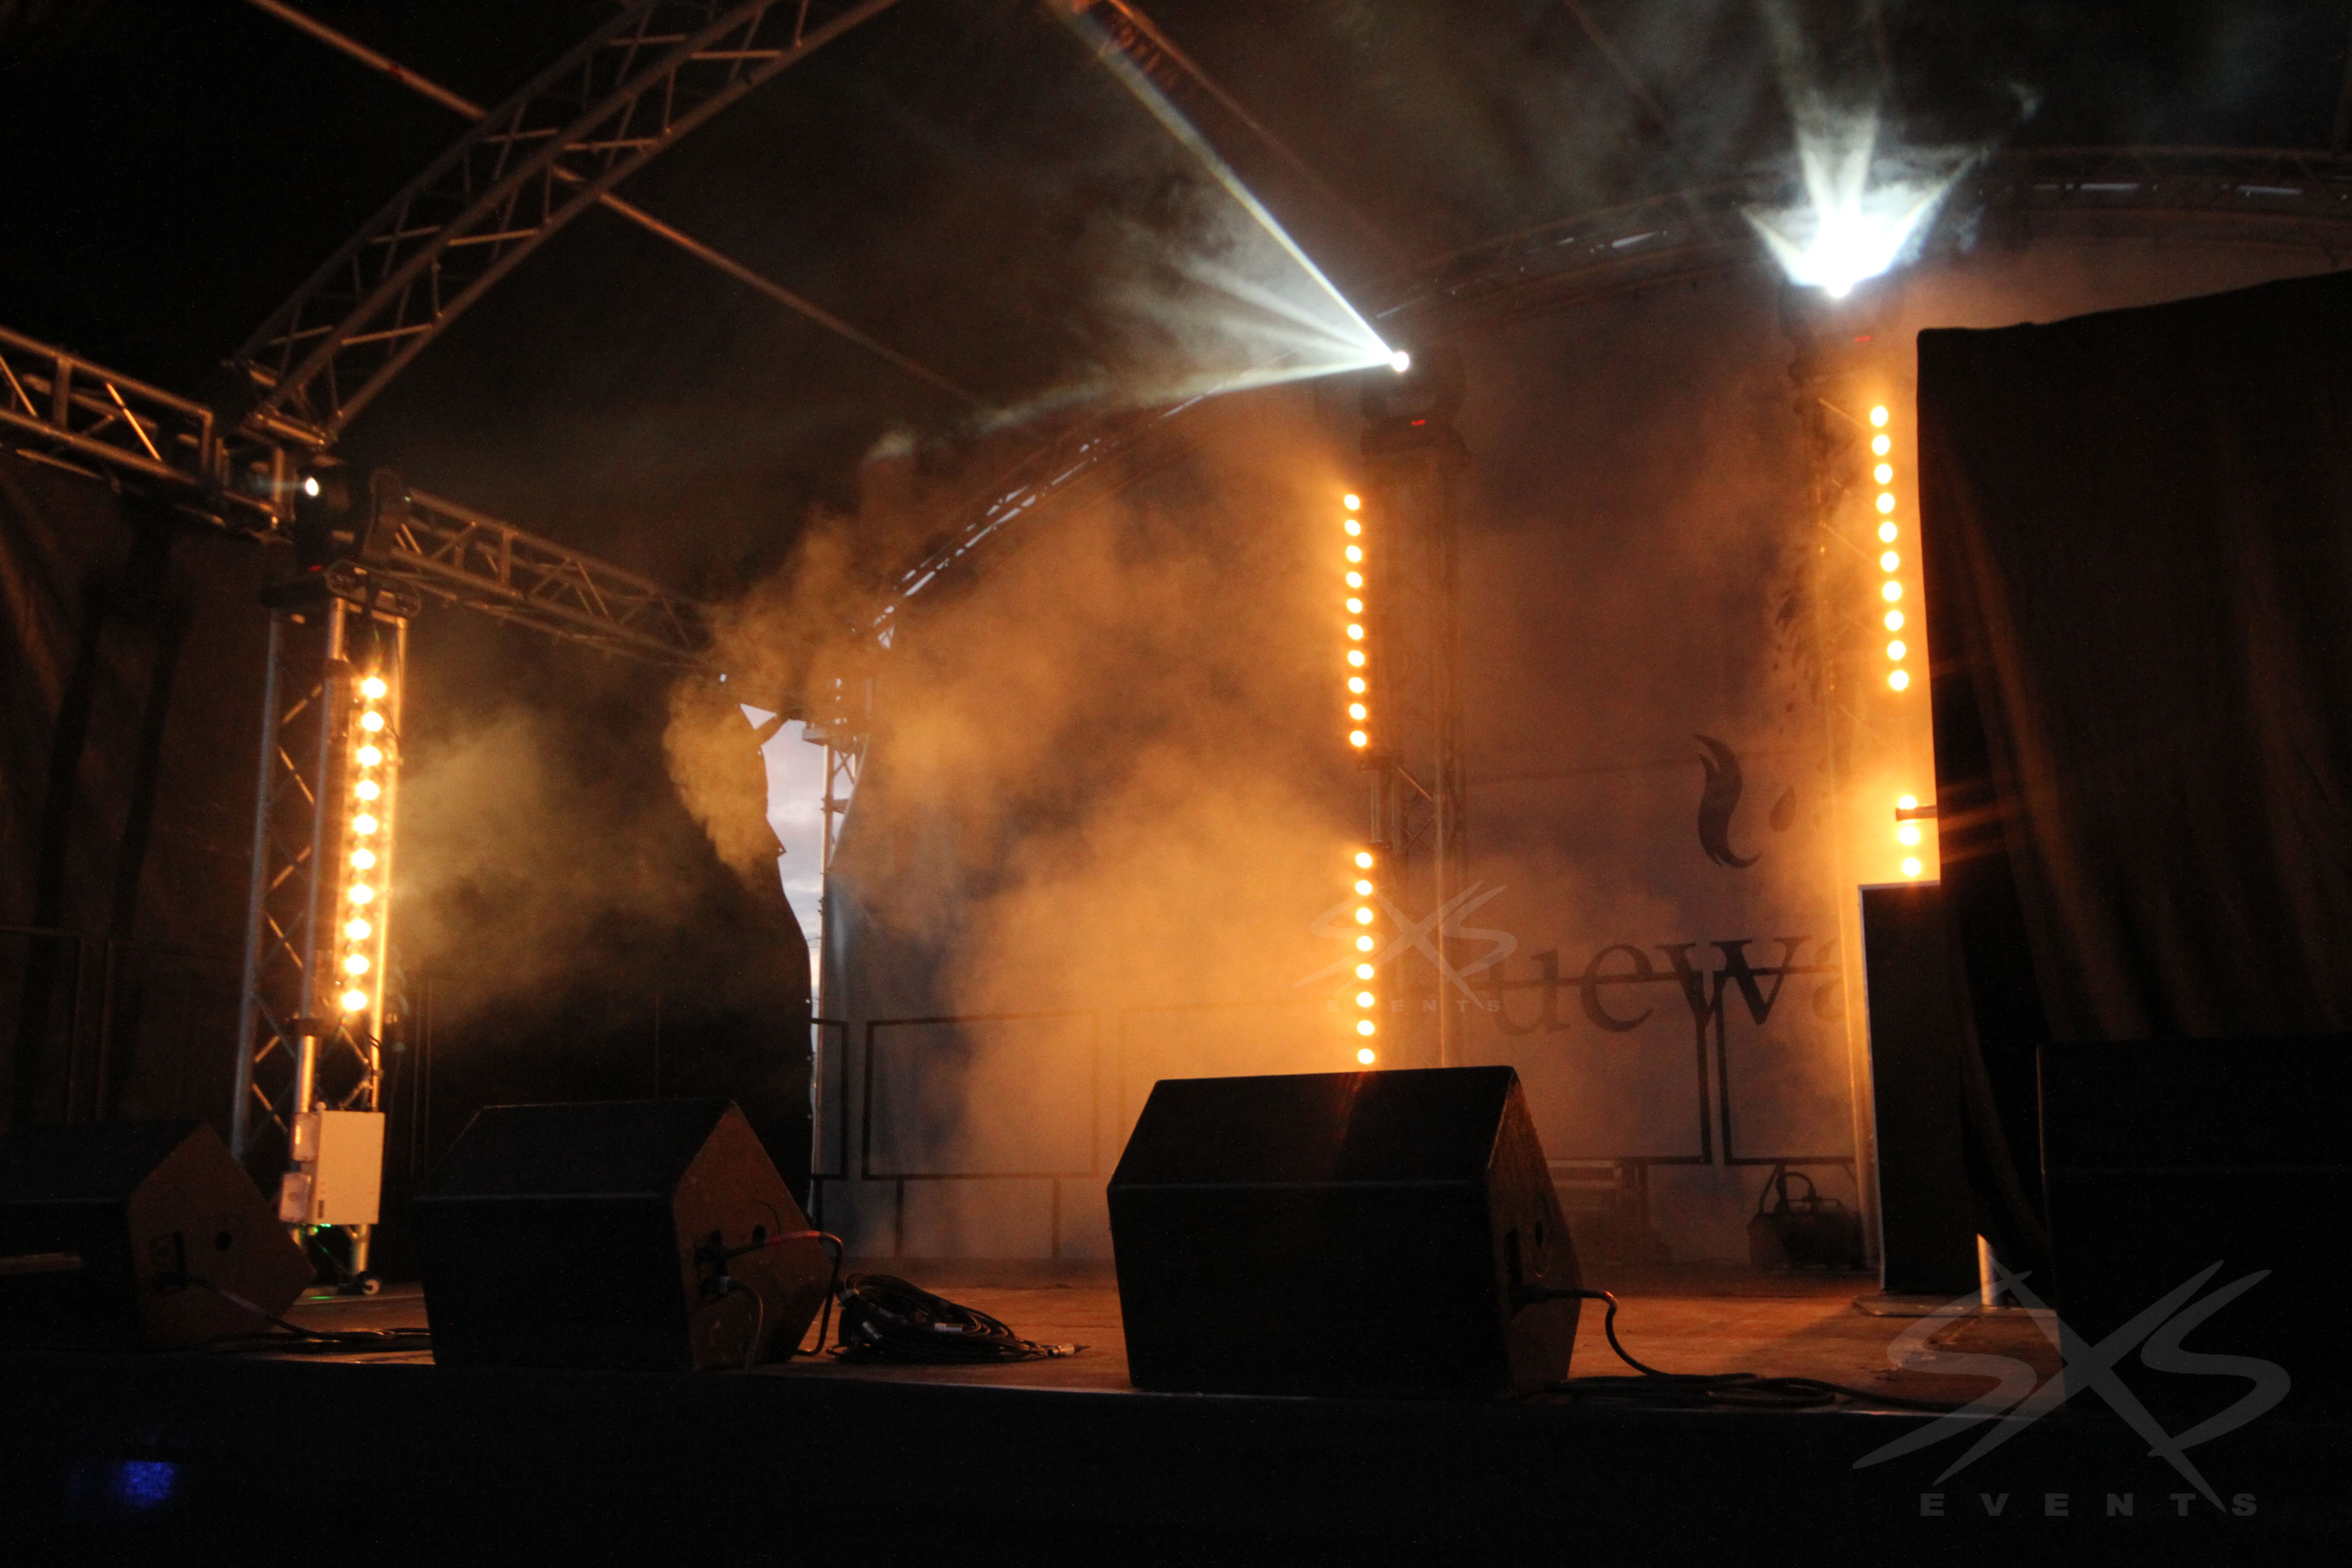 Stage lighting sunstrips and moving head beam lights with haze